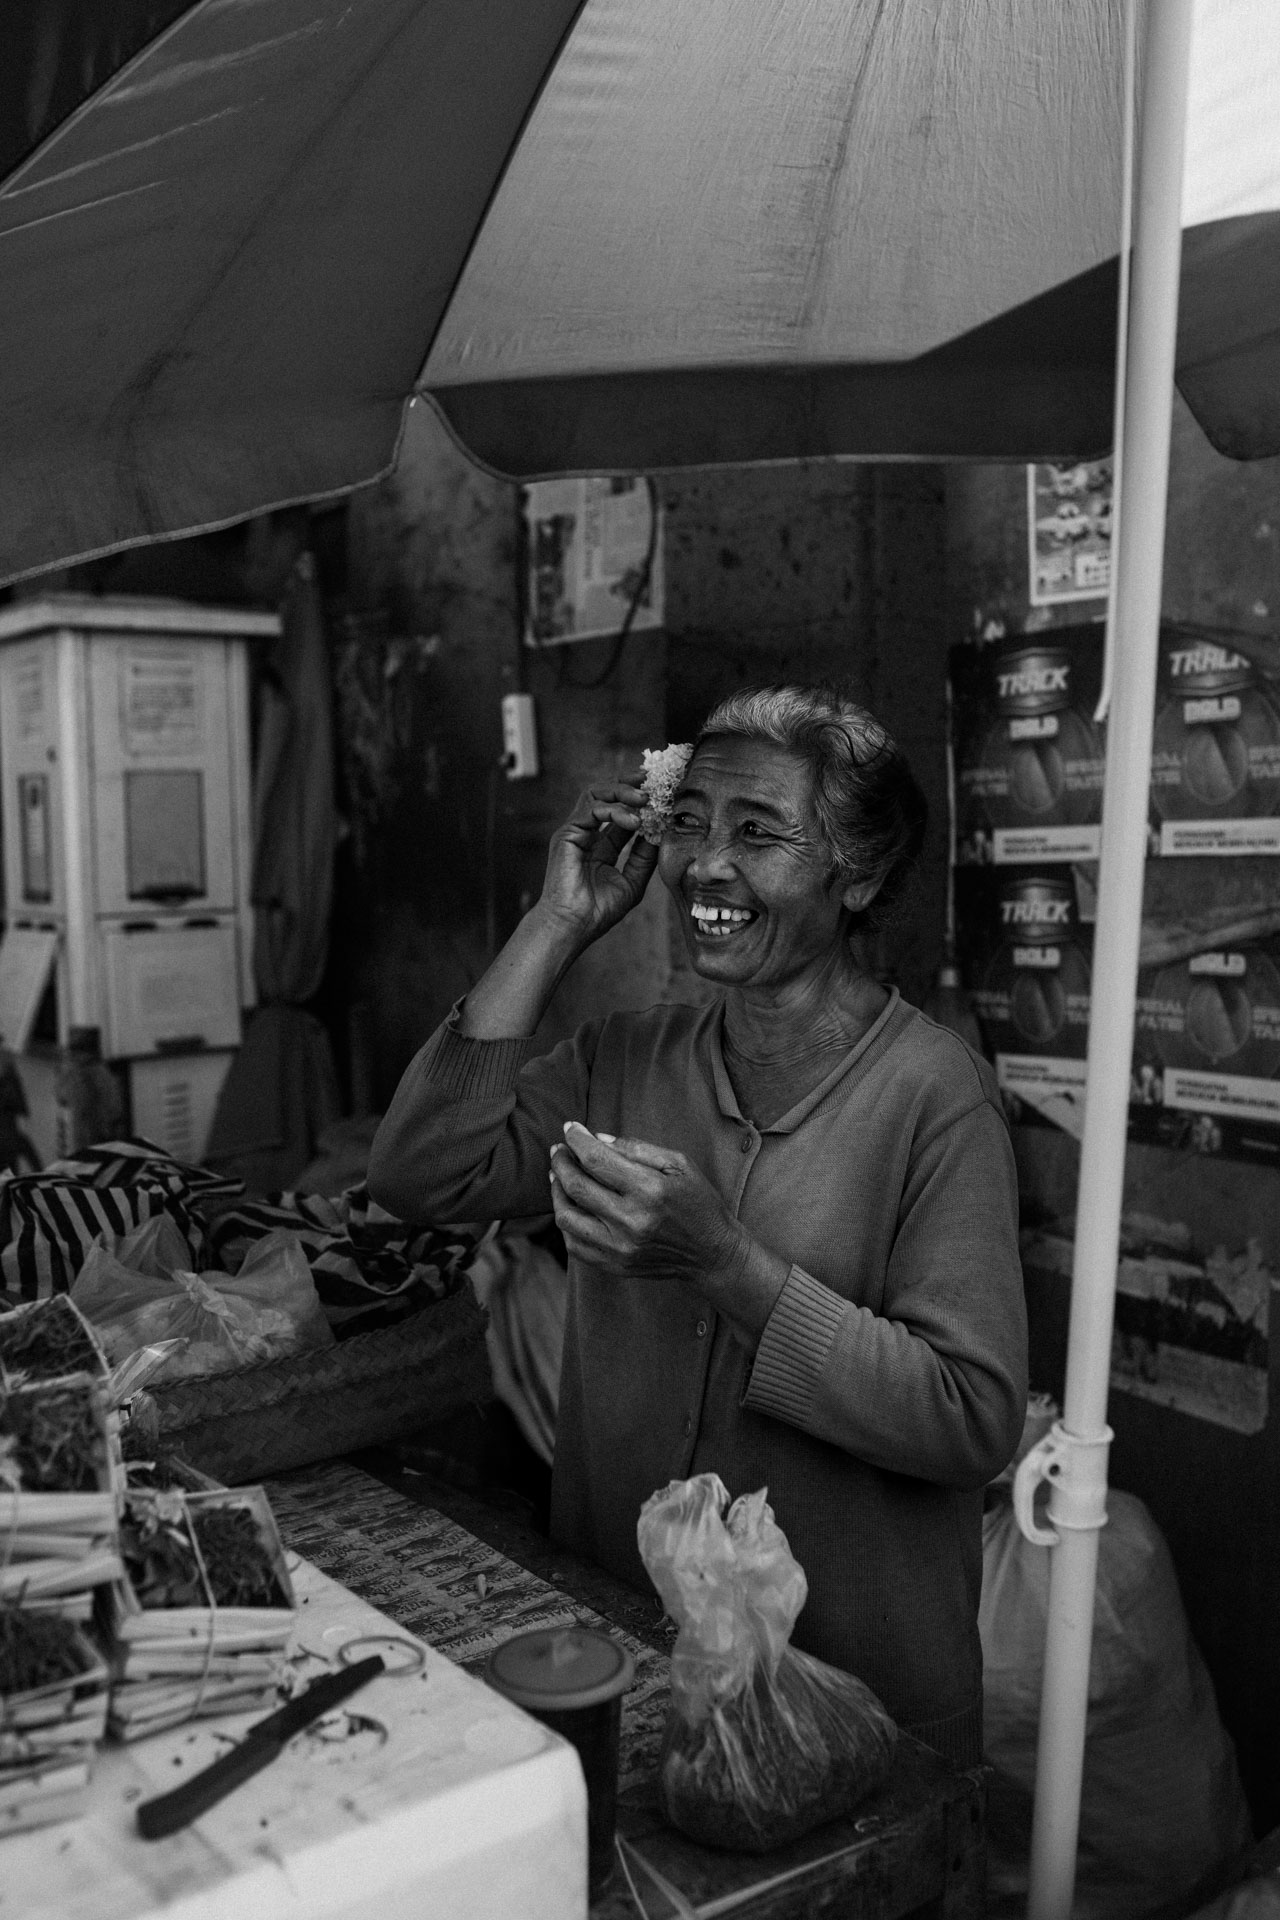 keira-mason-nordic-retreats-bali-markets-shop-owner.jpg